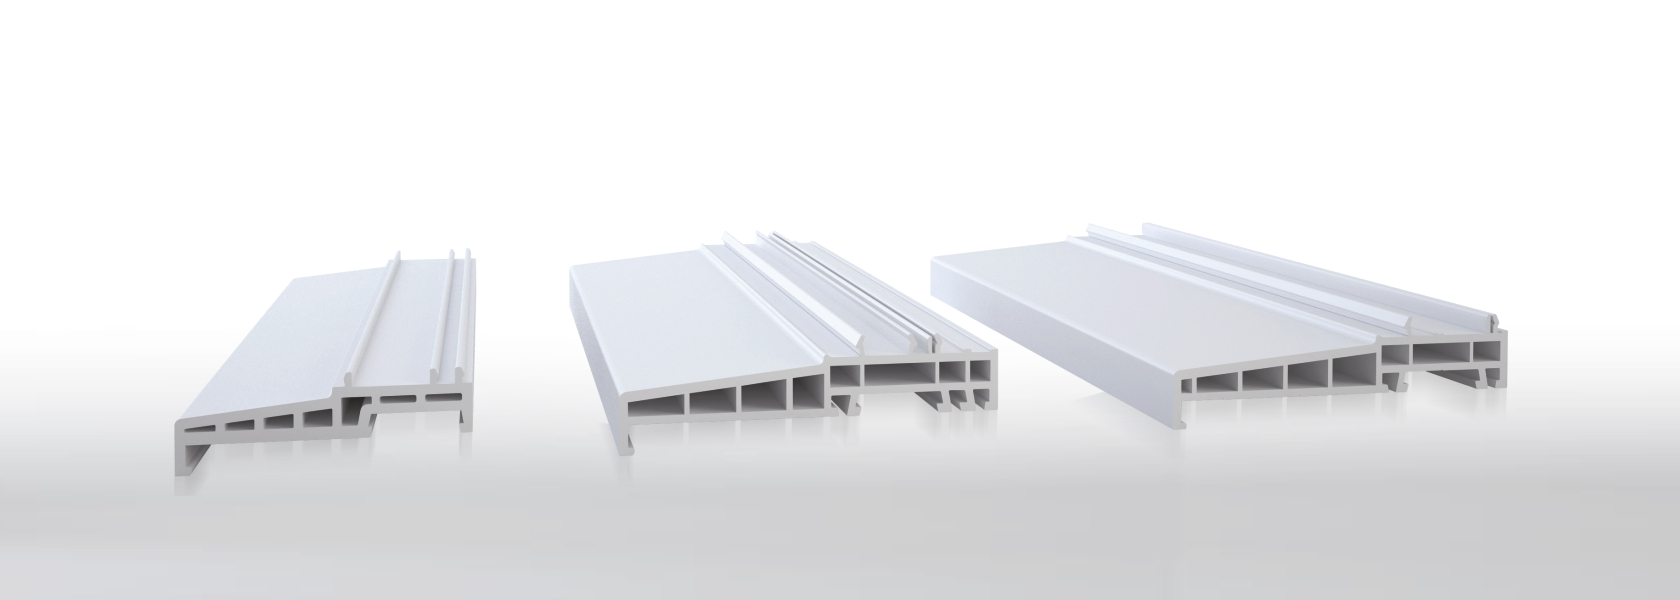 Additional Aluplast profiles and accessories